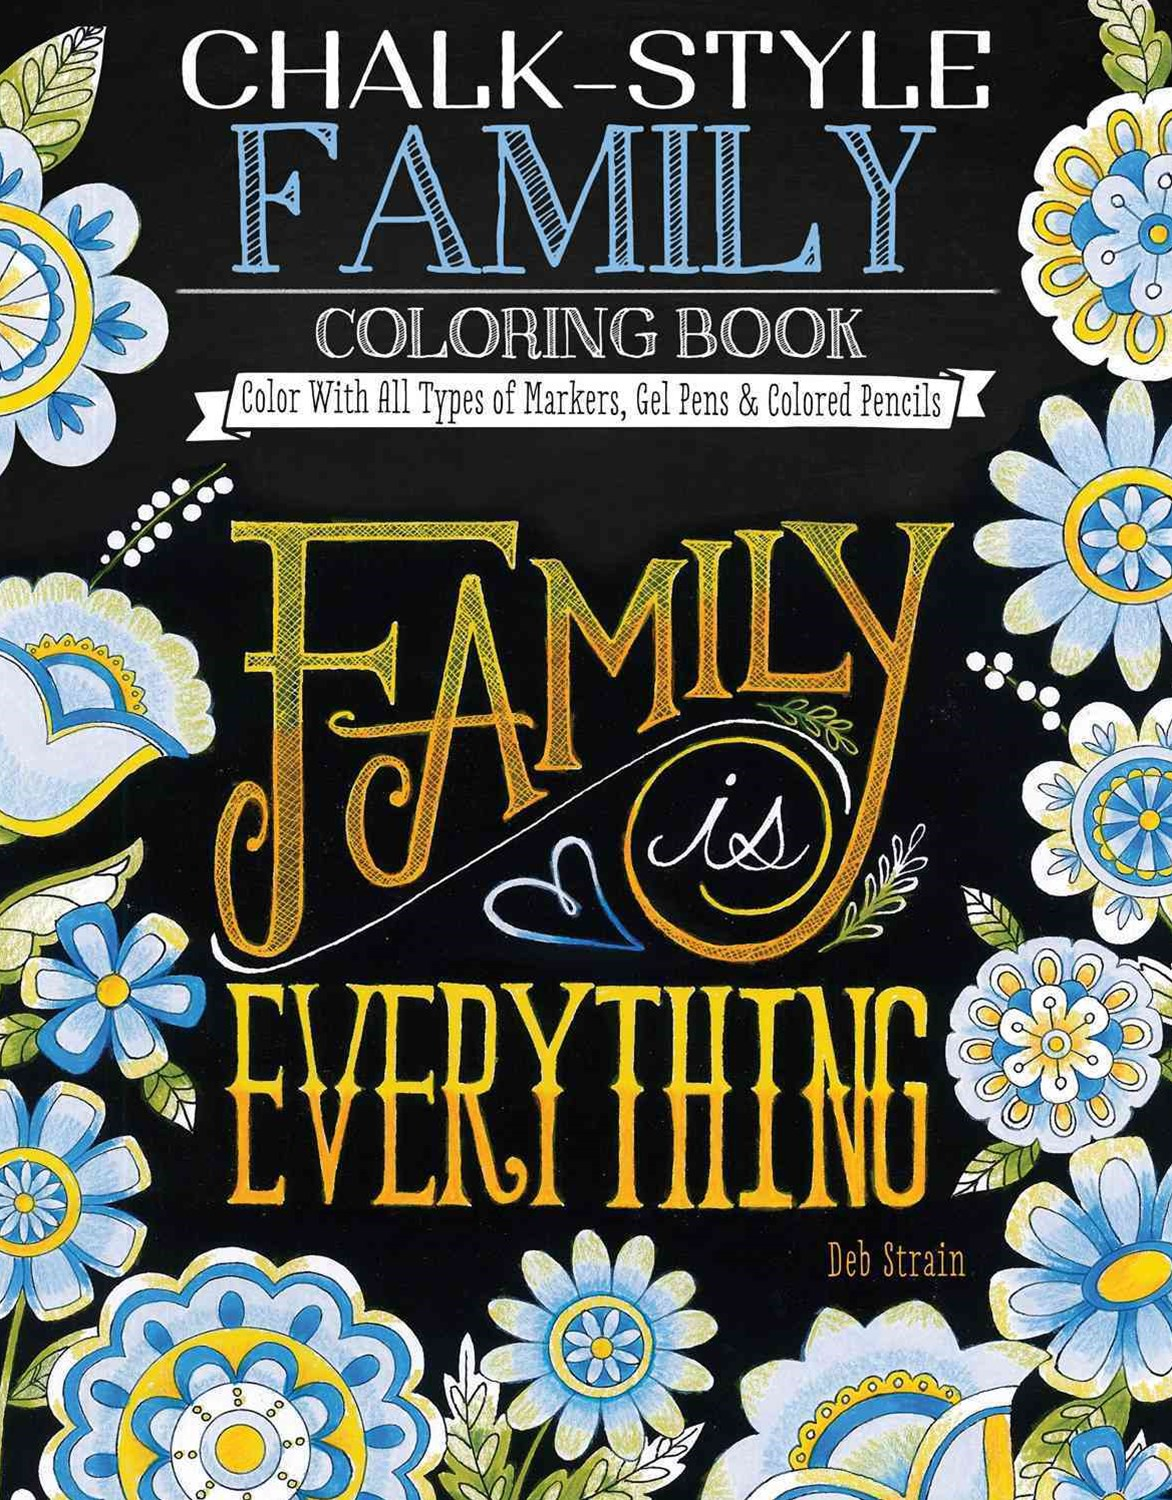 Chalk-Style Family Coloring Book